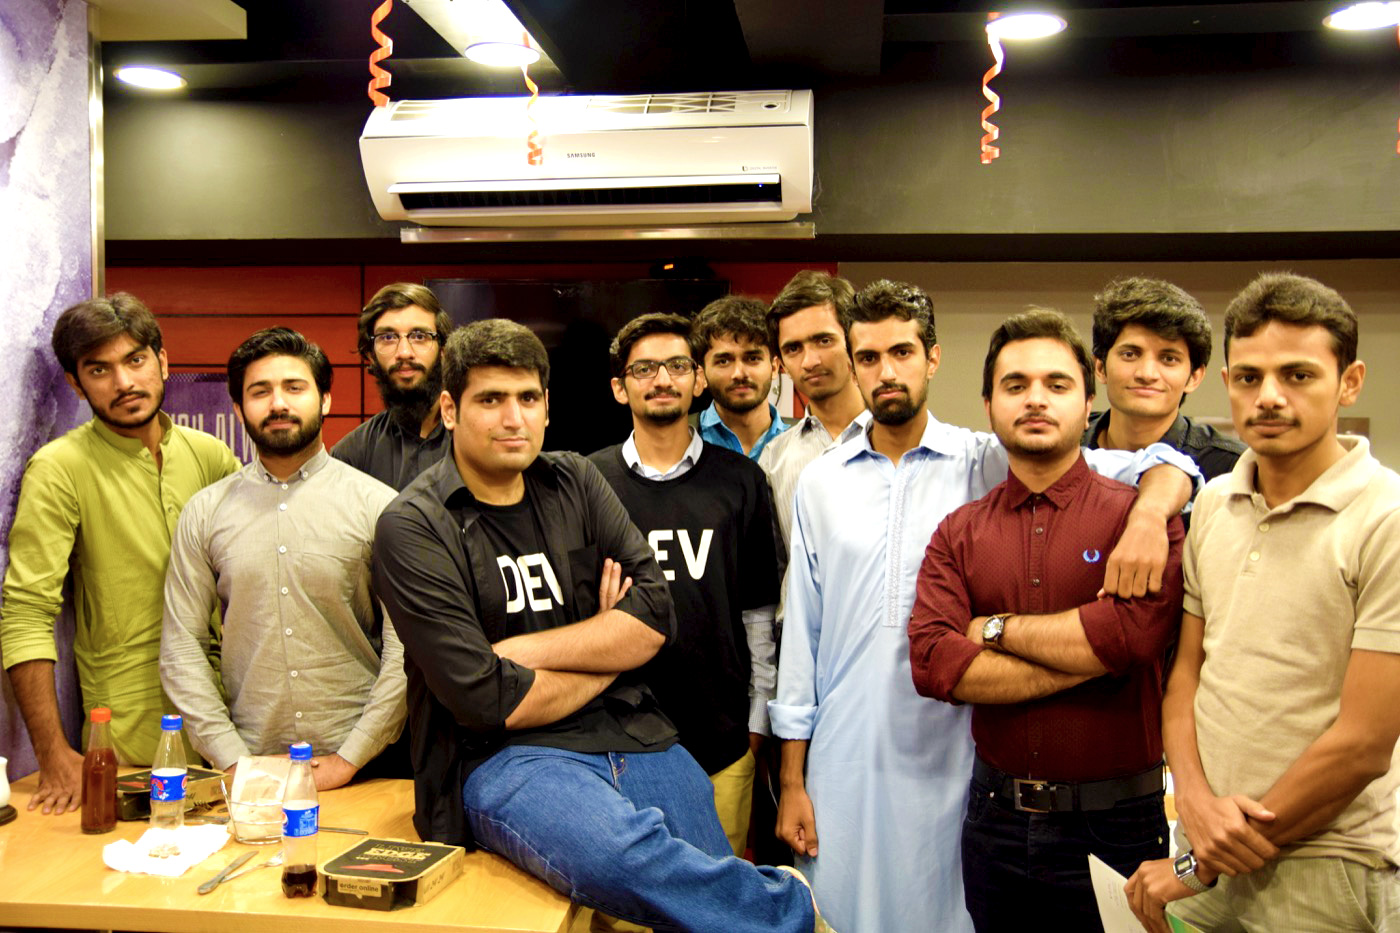 UETIANS with Ahmad Awais at the end of Hacktoberfest Event